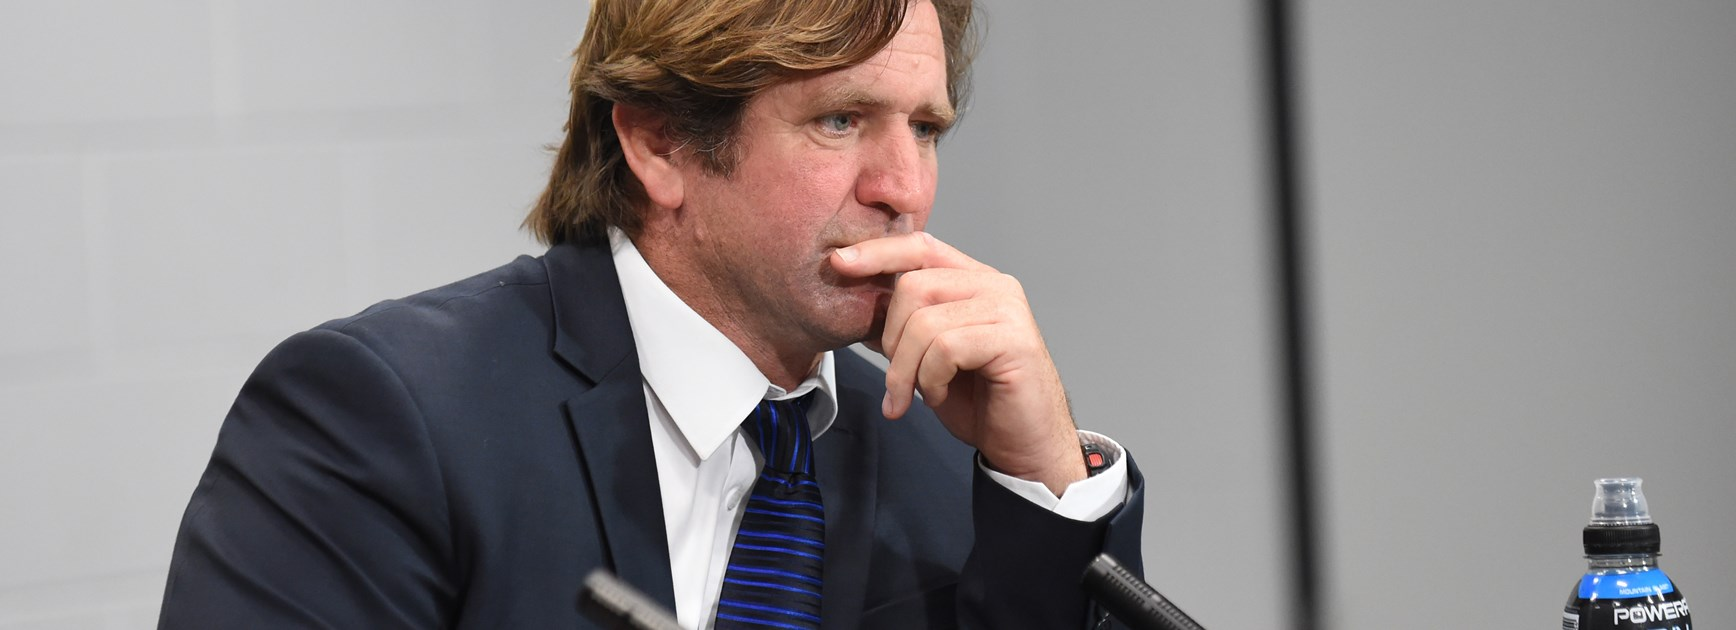 The Bulldogs and Des Hasler reach a settlement